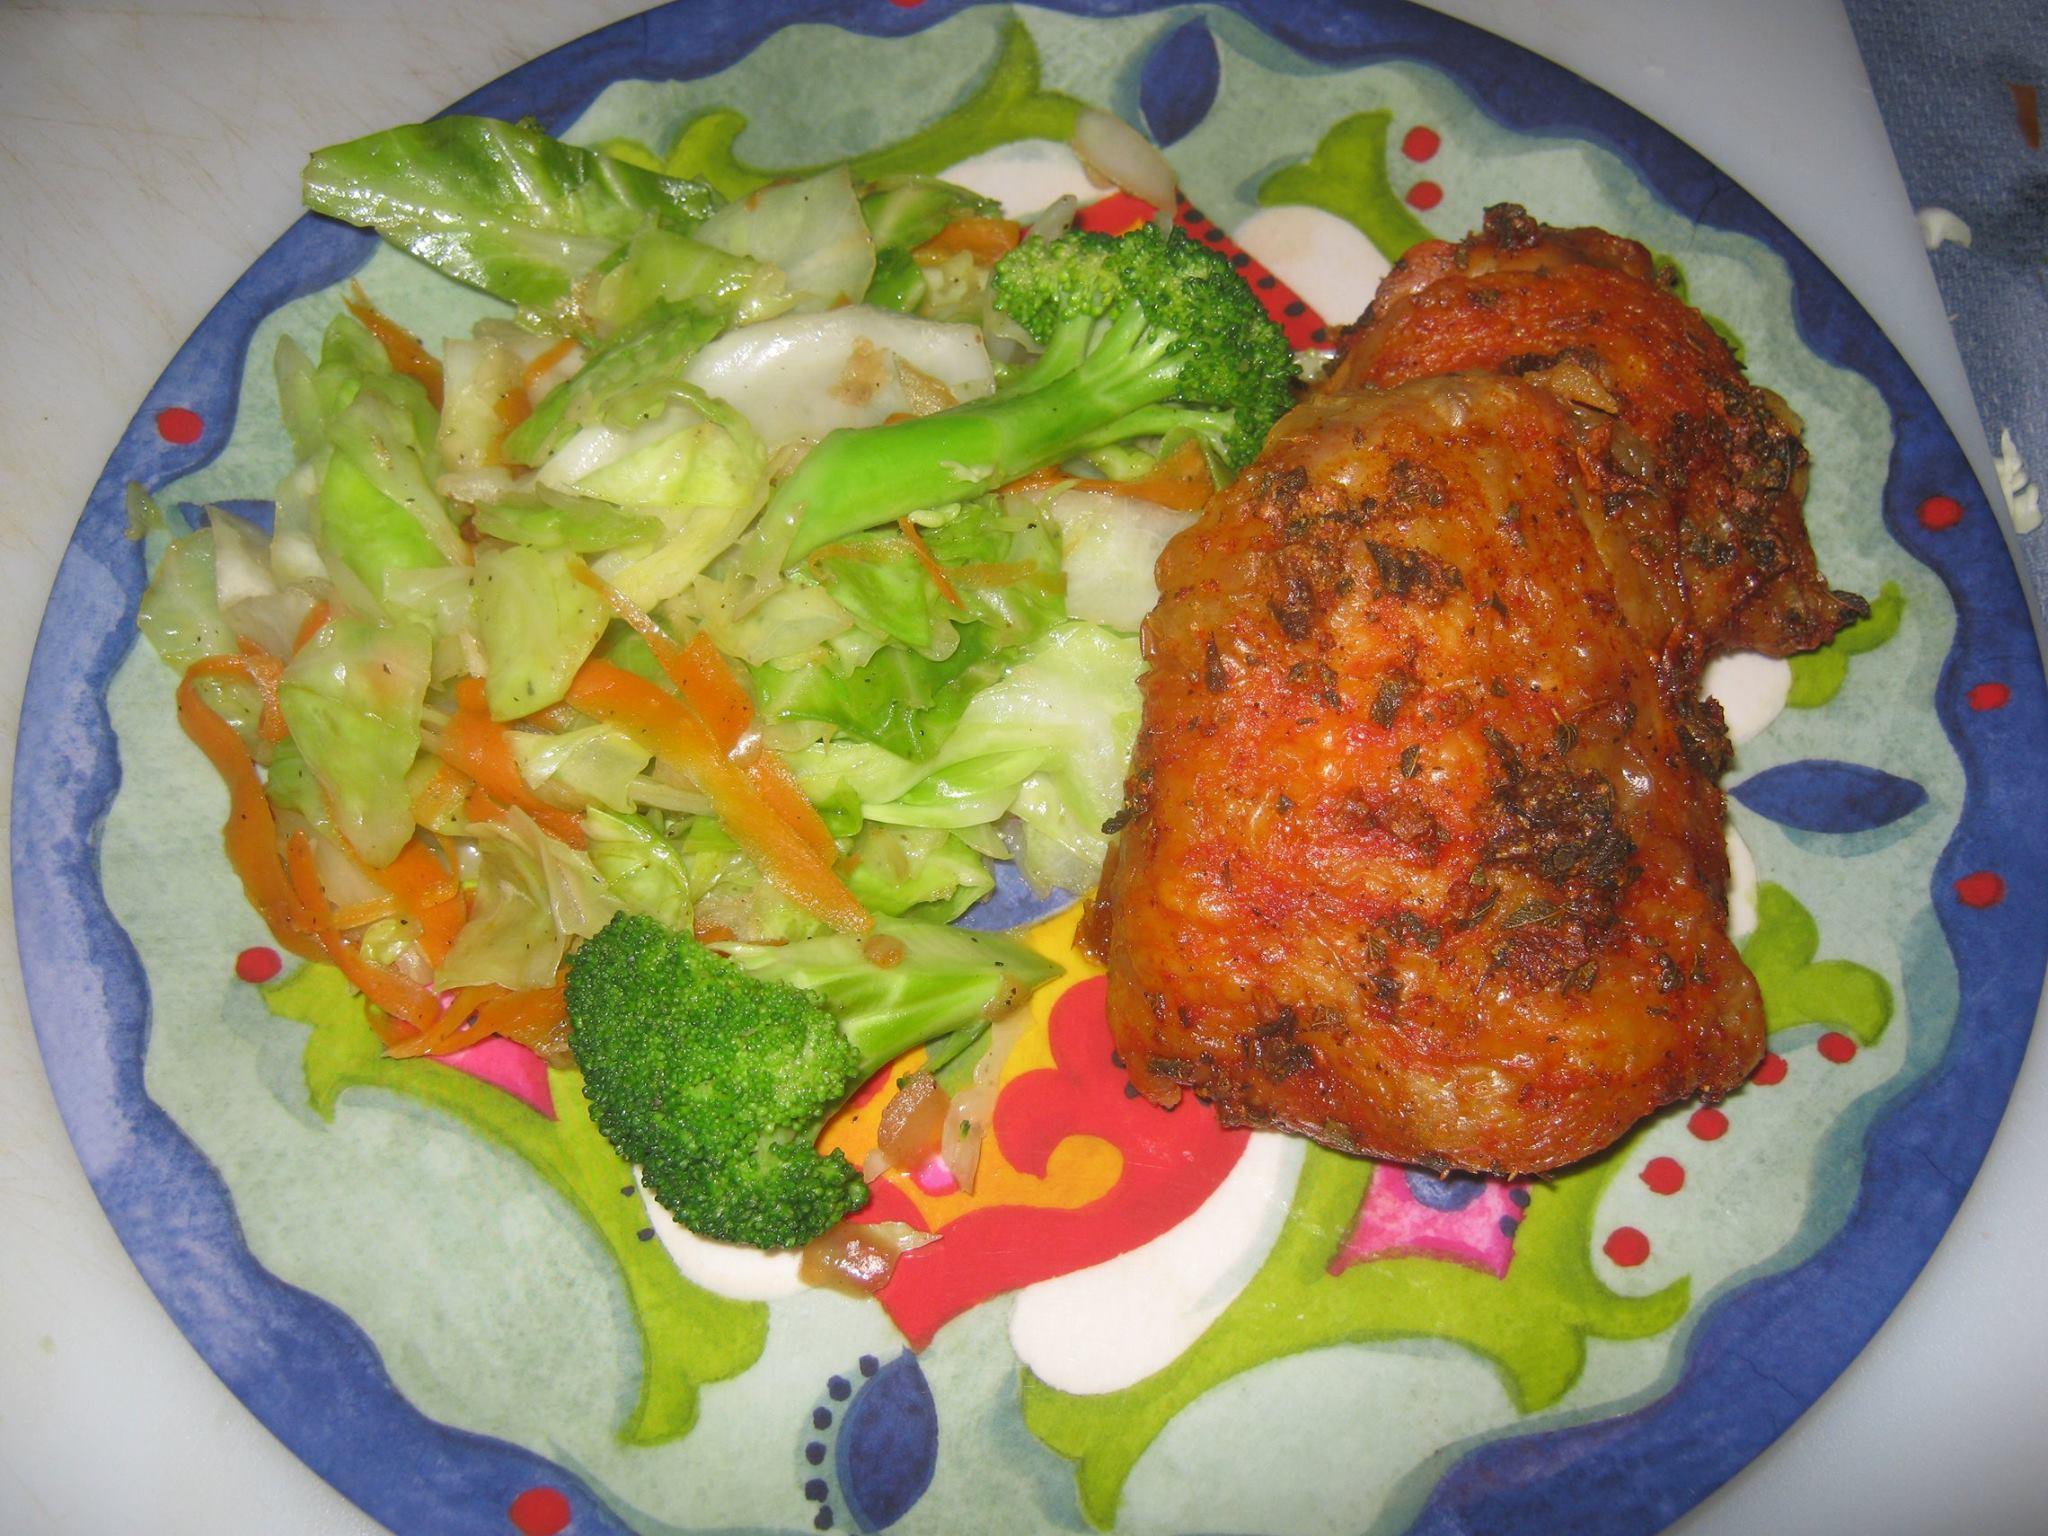 Green cabbage, broccoli and carrots with Cuban crispy chicken